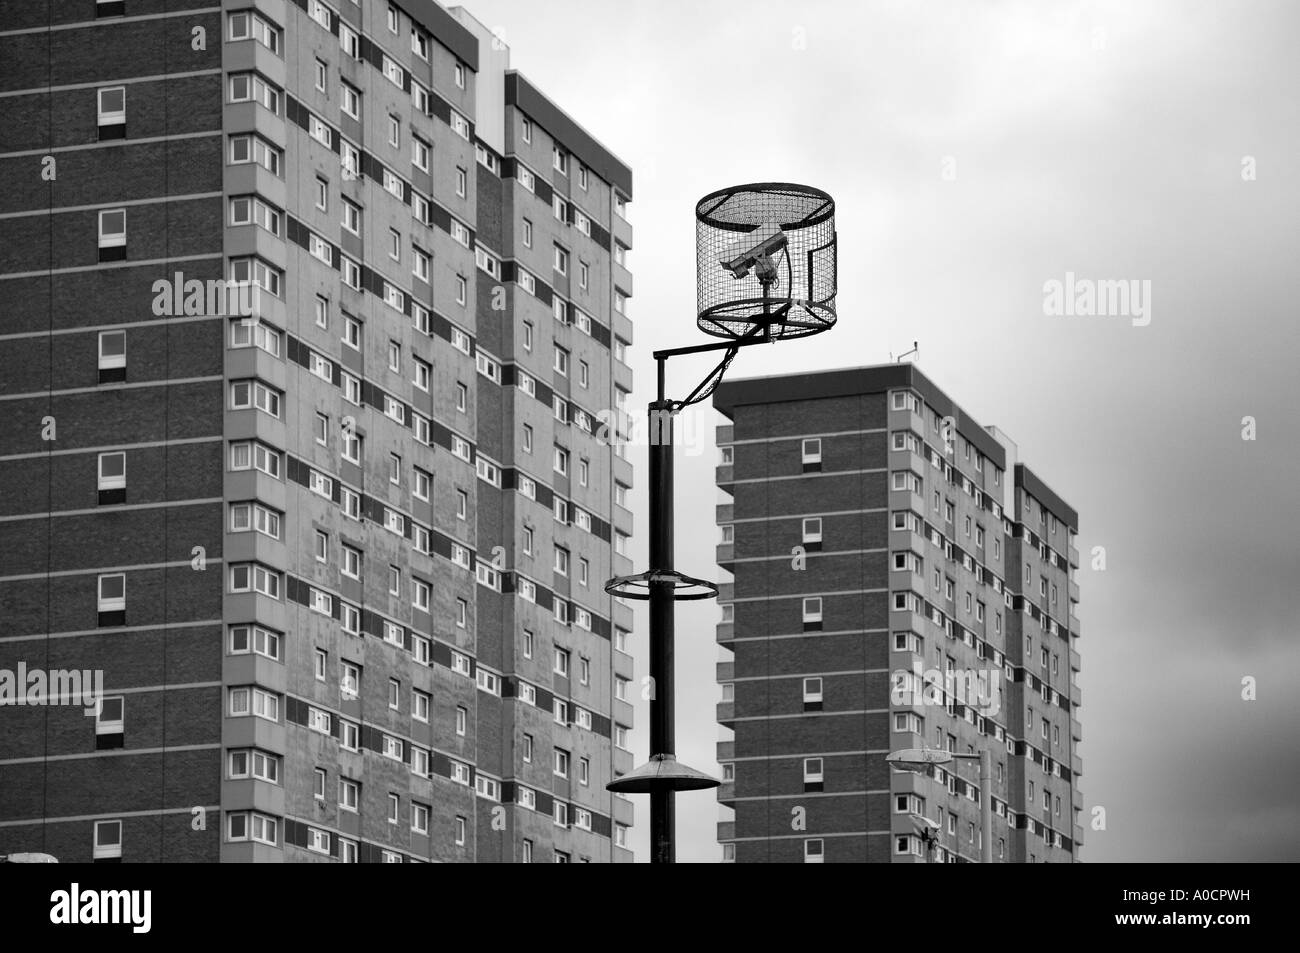 Big brother CCTV Dundee. Perthshire security cameras overlooking multi-storey flats,  surveillance cameras of high rise accommodation, Scotland UK - Stock Image